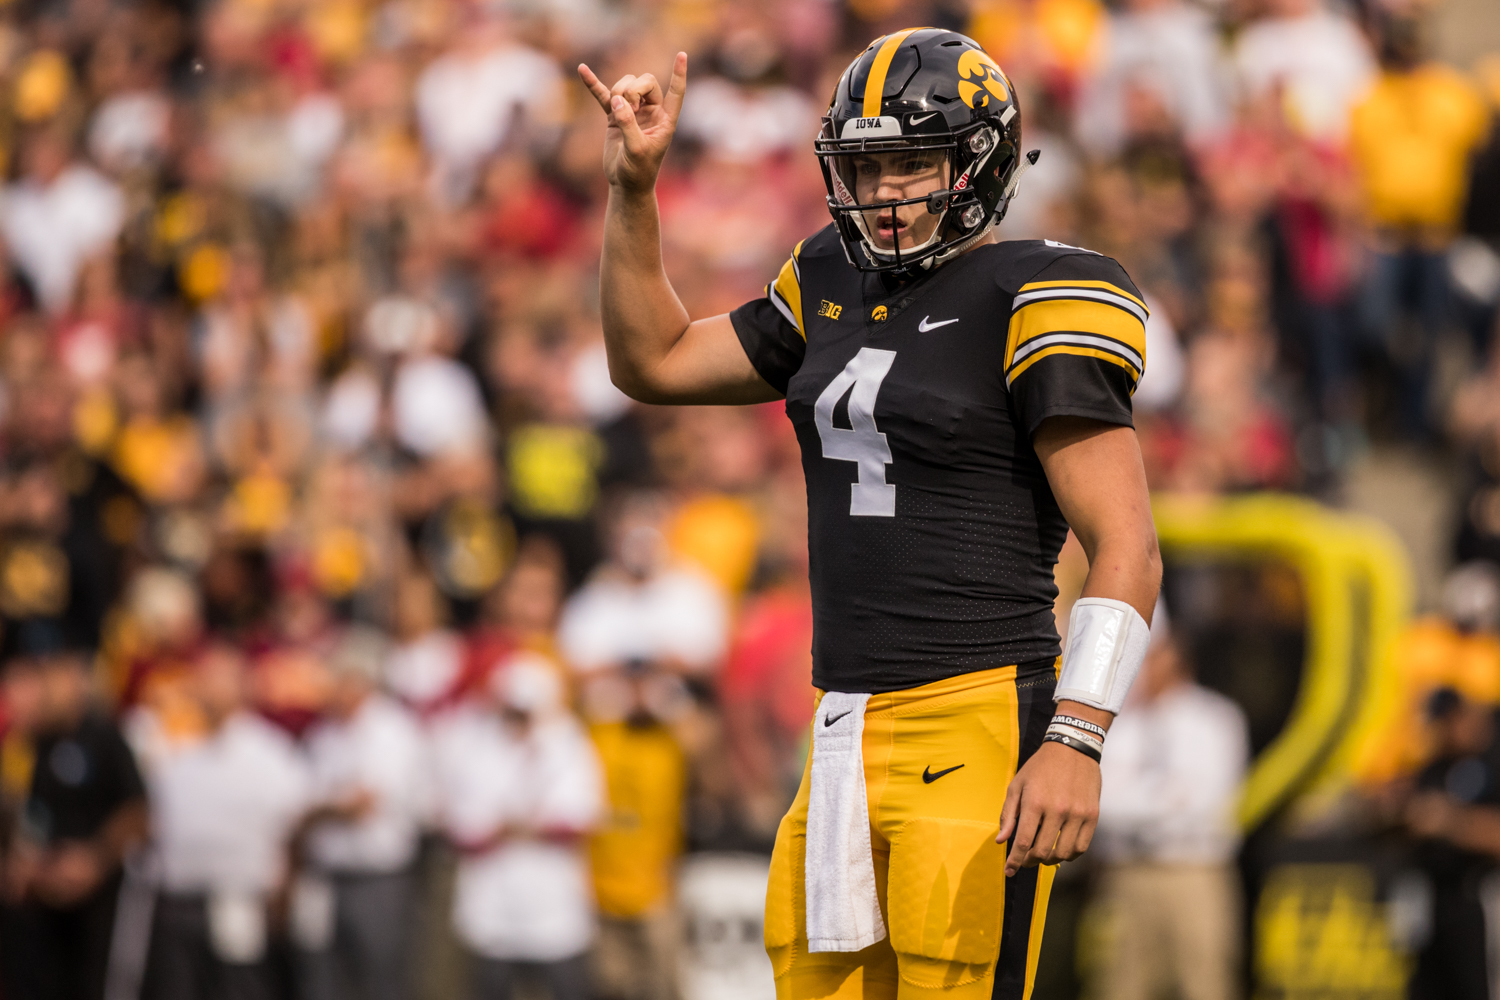 Iowa quarterback Nate Stanley signals during Iowa's game against Iowa State at Kinnick Stadium on Saturday, September 8, 2018. The Hawkeyes defeated the Cyclones 13-3.